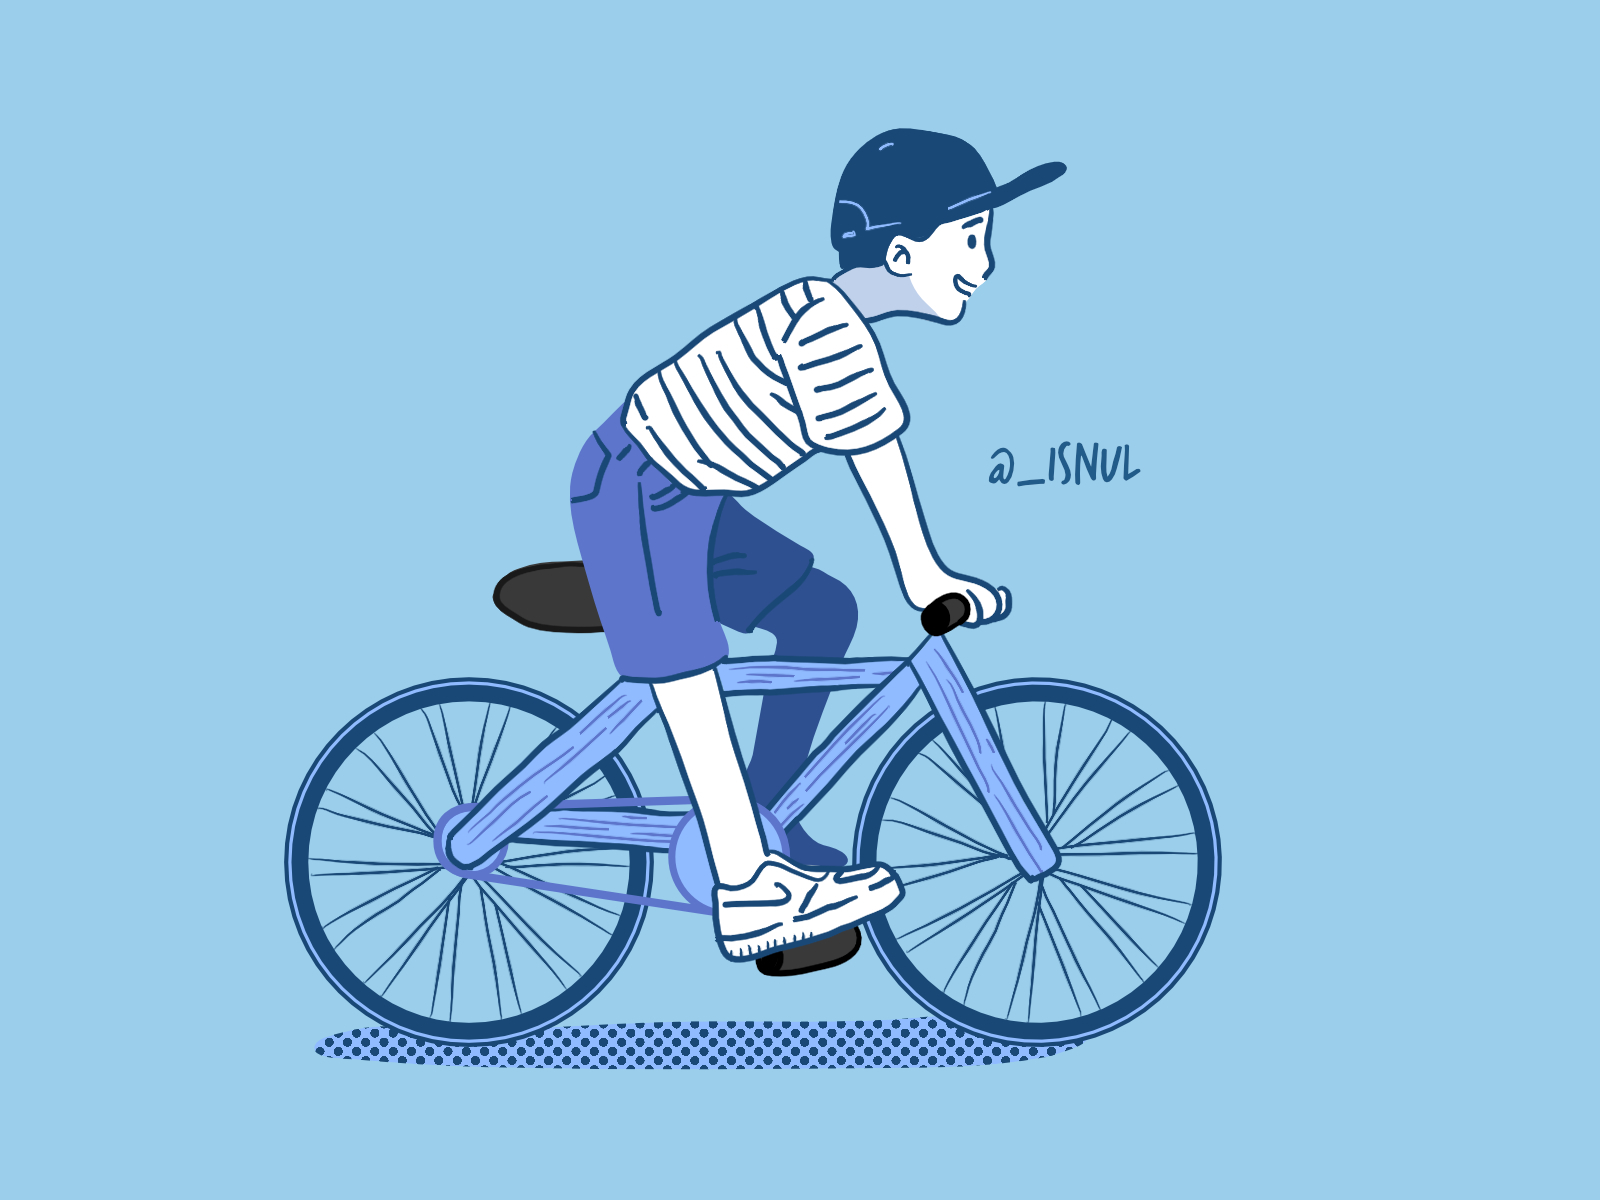 Ride My Bicycle By Muhammad Isnul On Dribbble